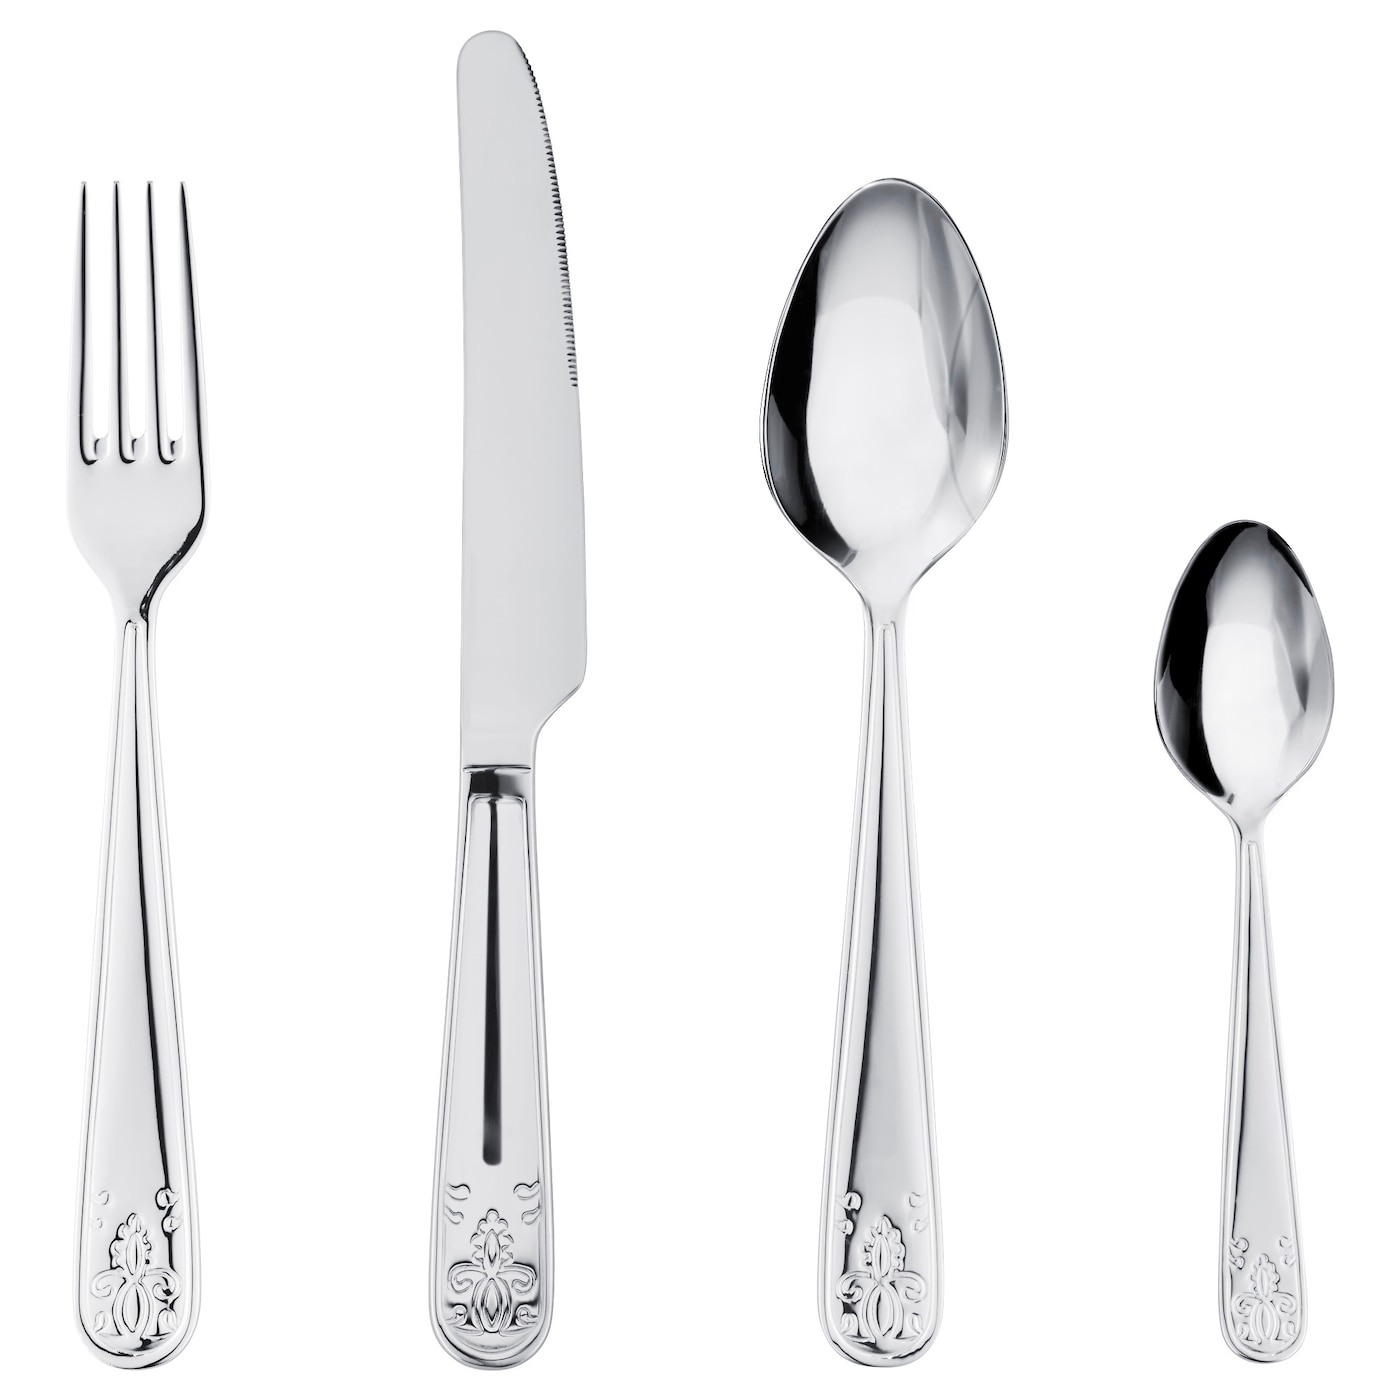 IKEA ÄTBART 24-piece cutlery set